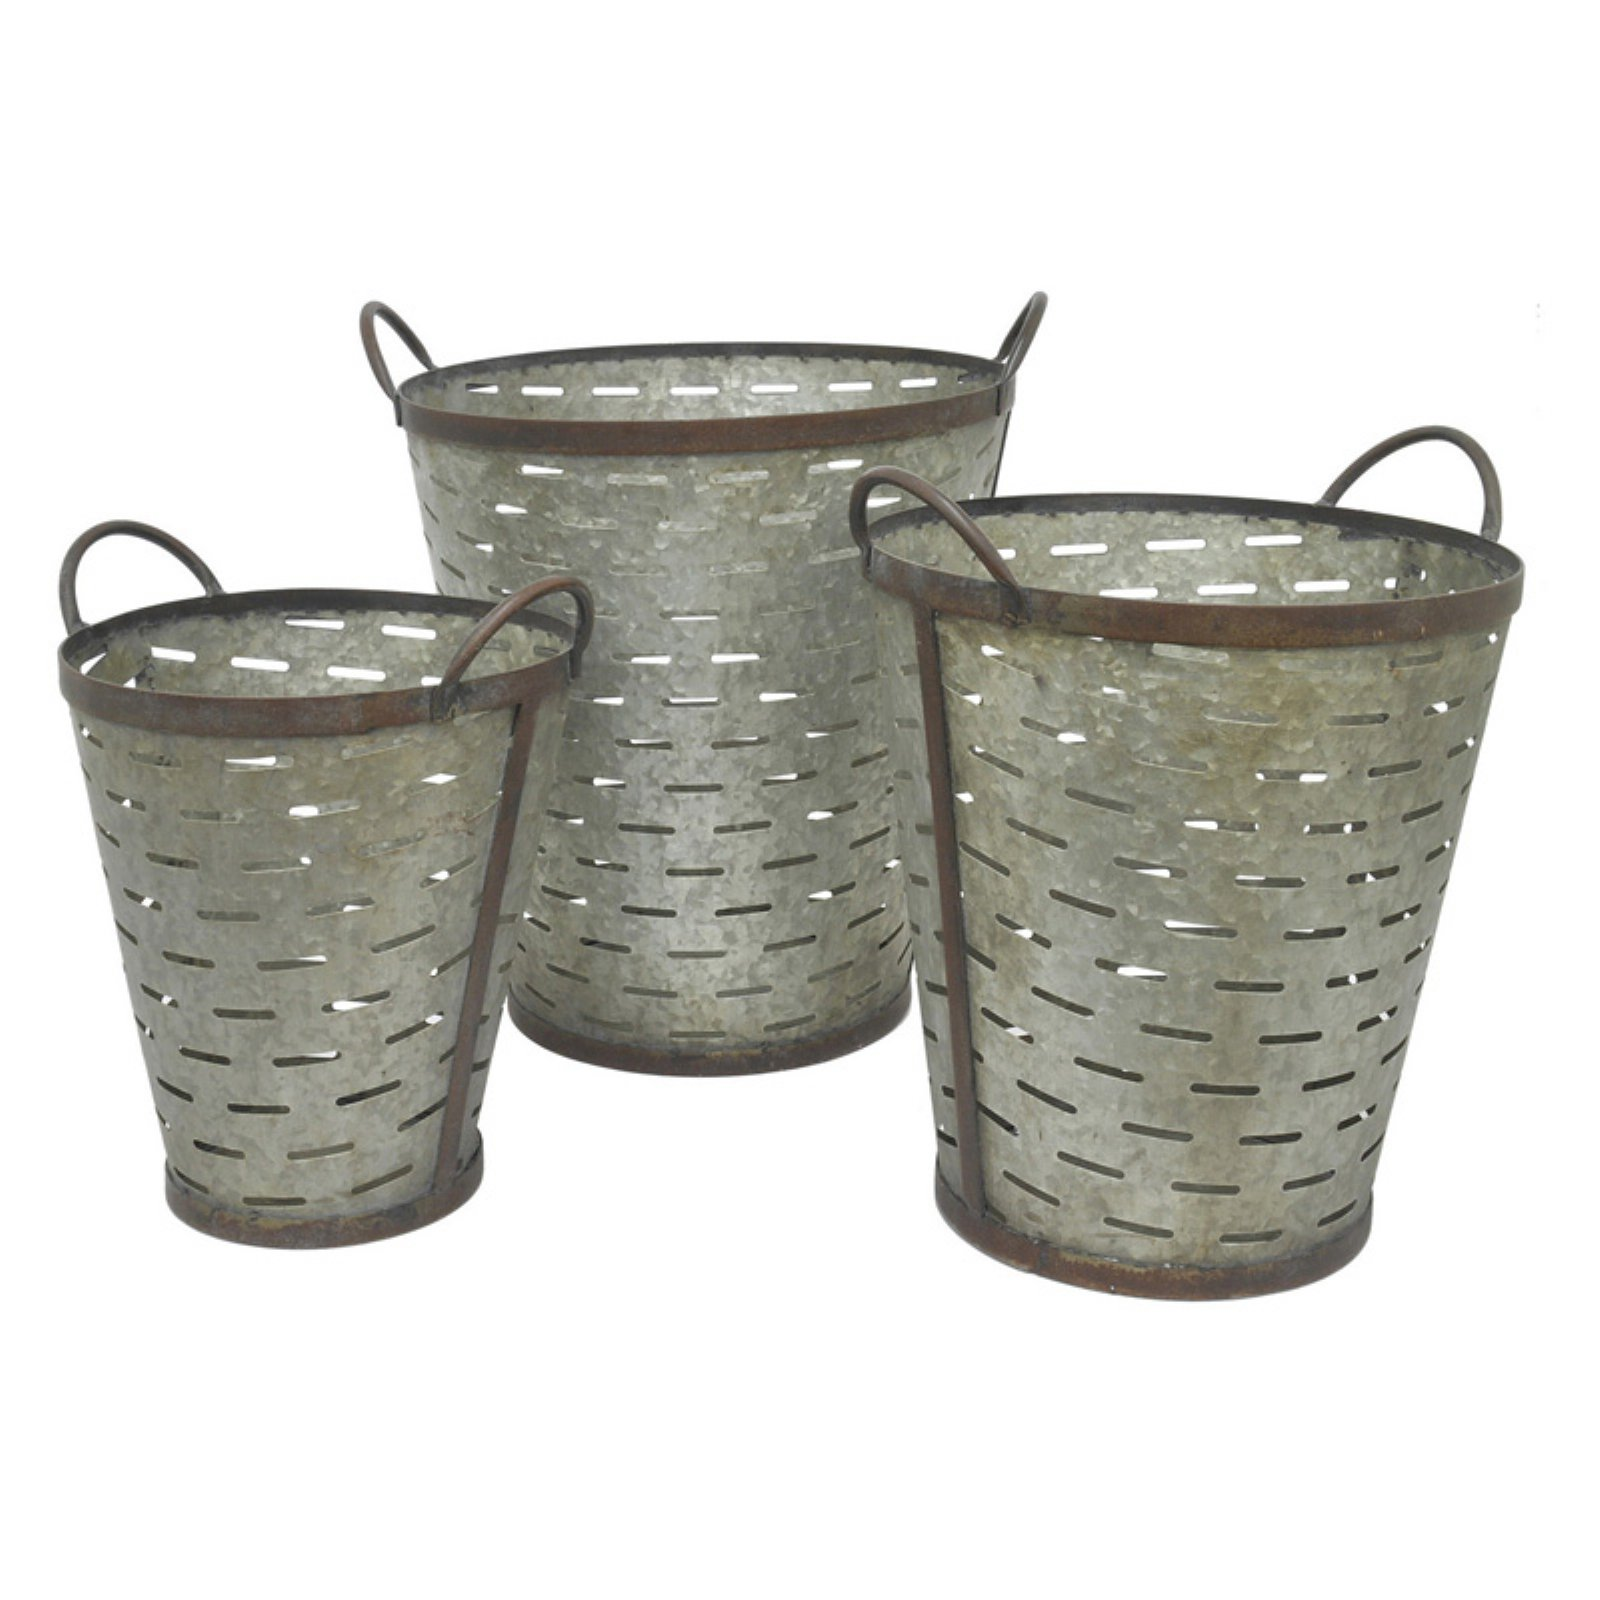 Three Hands 3 Piece Galvanized Metal Bucket Planter Set